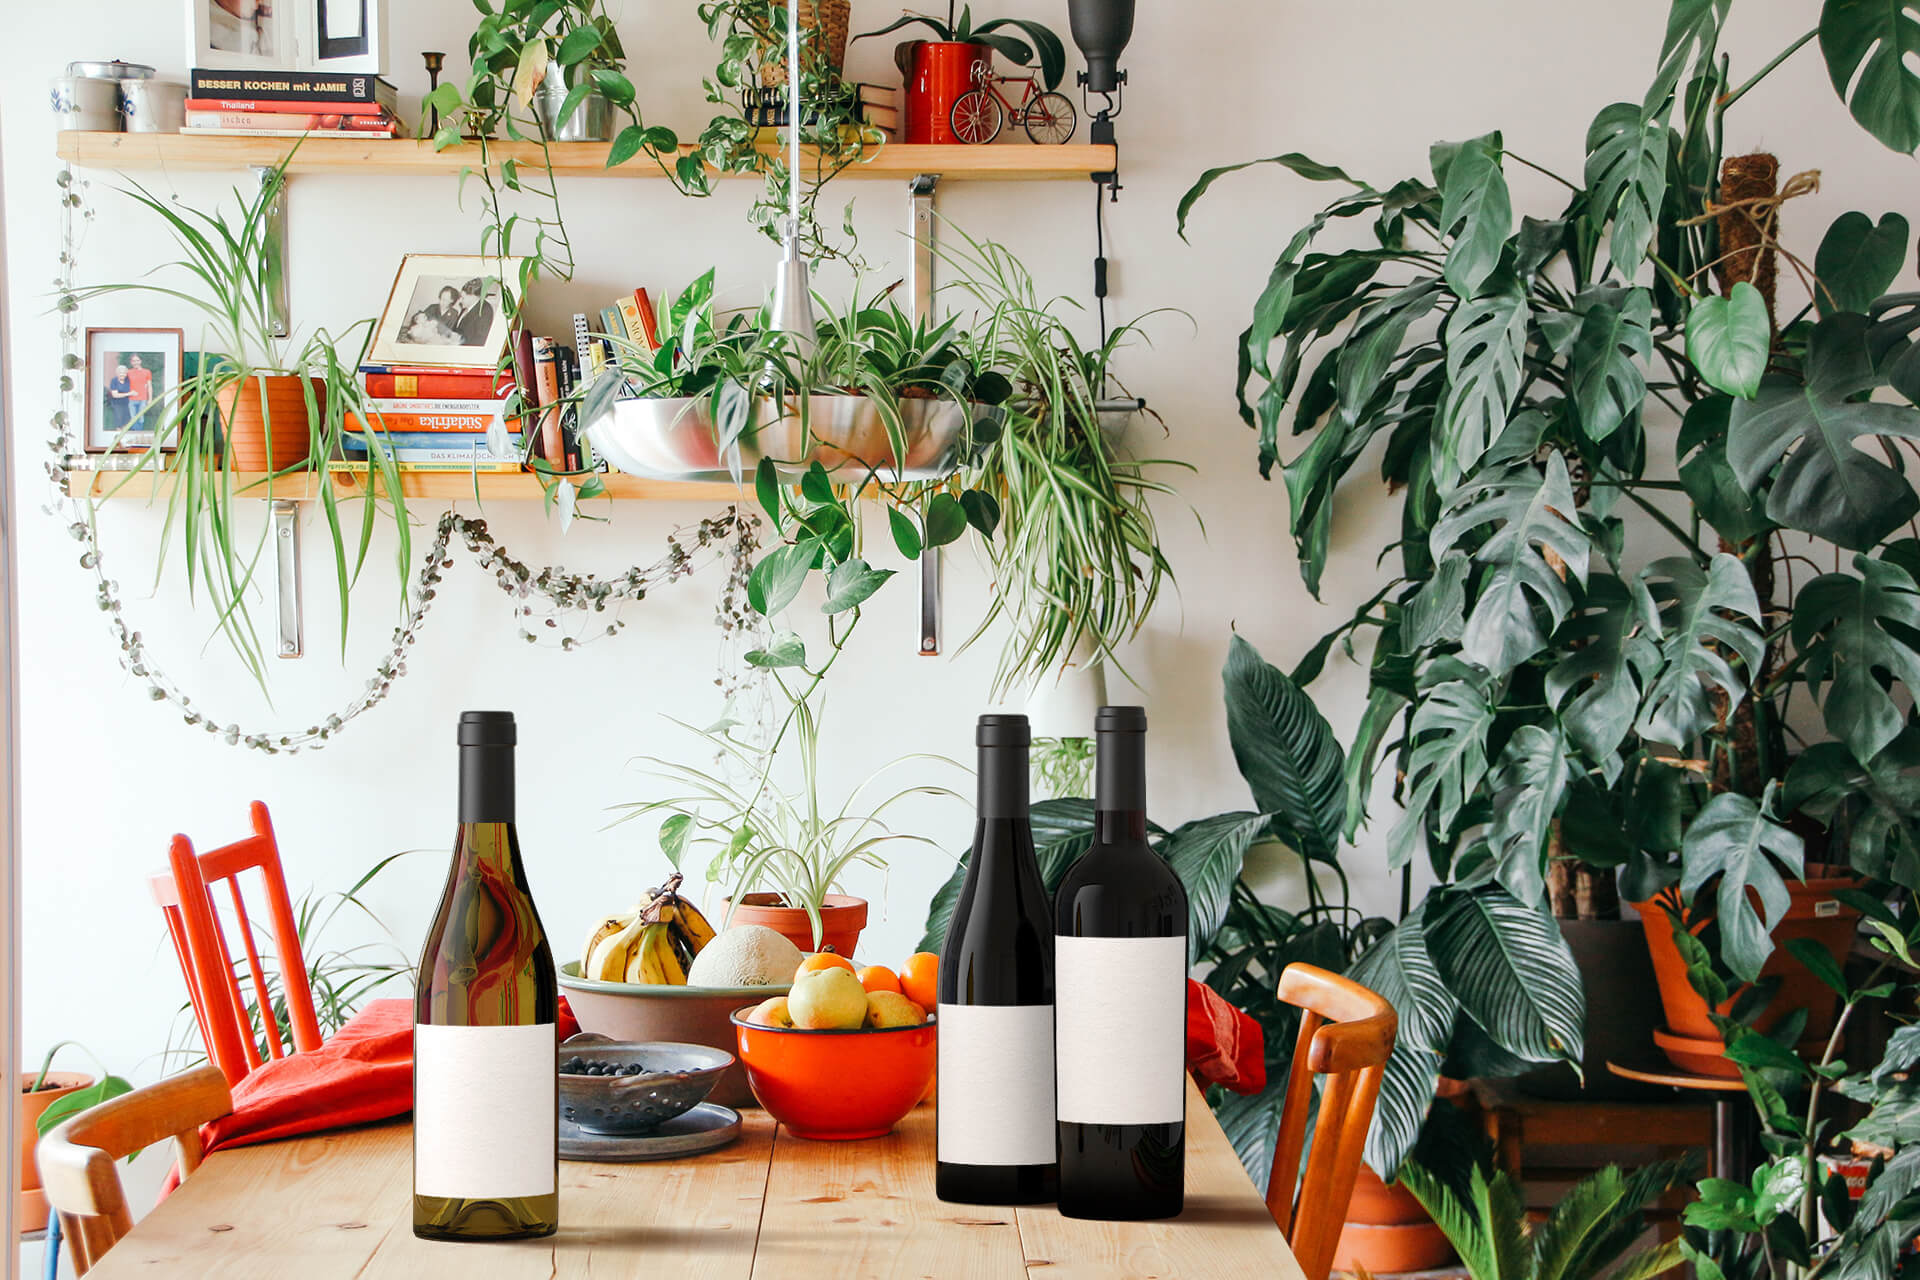 Leafy and bright kitchen